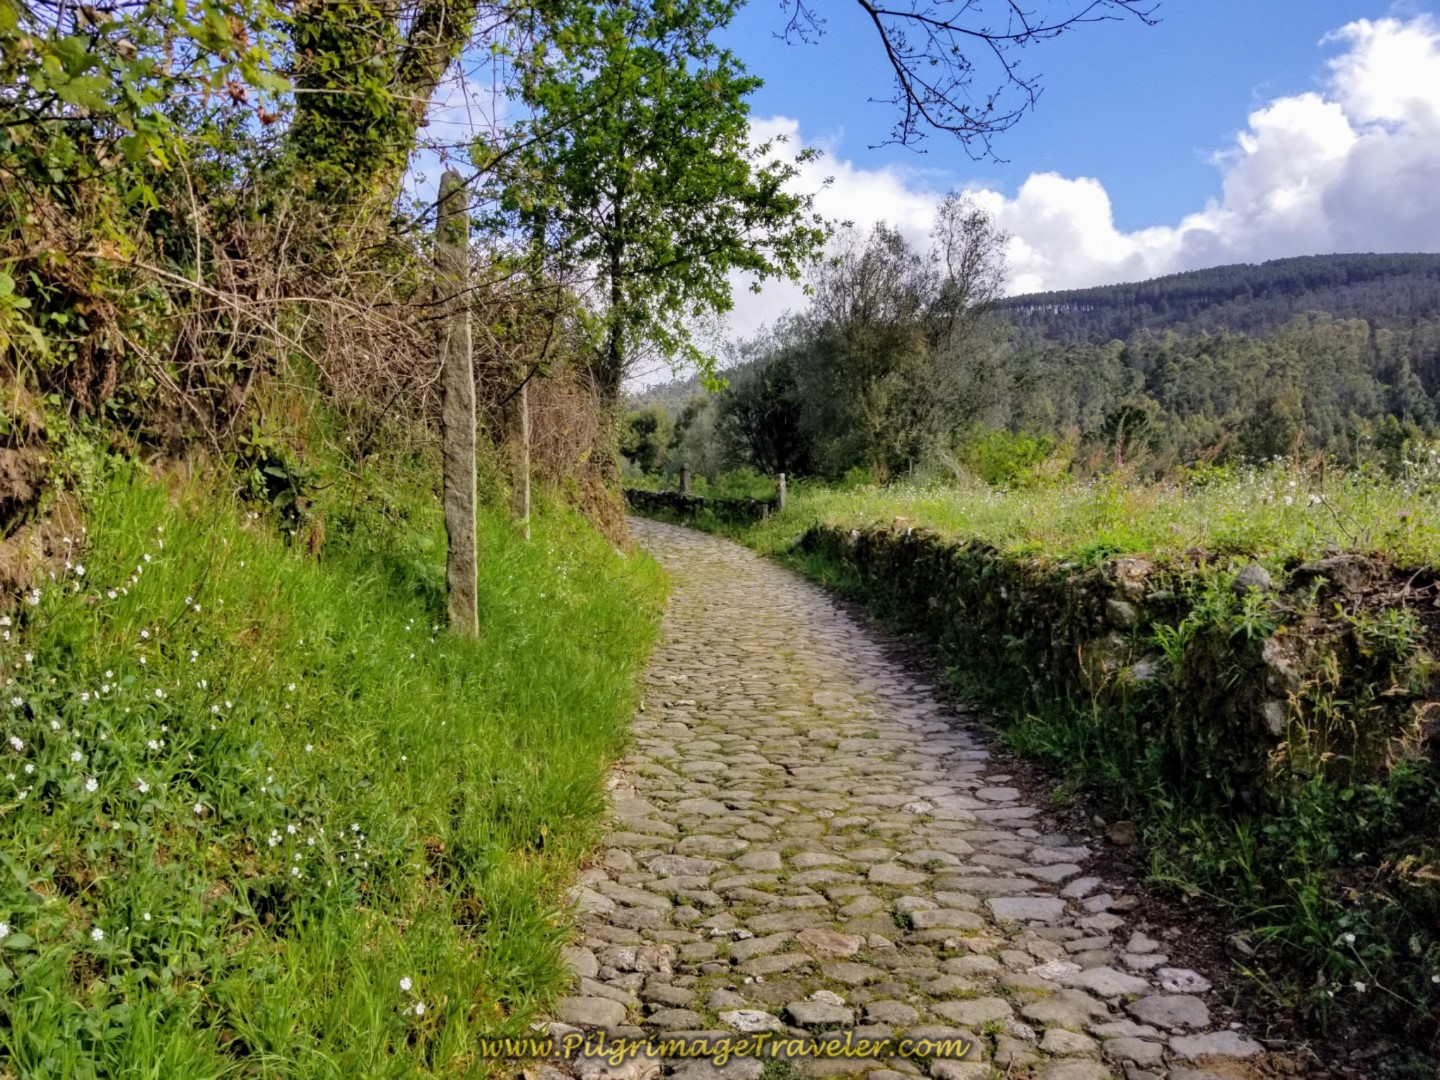 Cobblestone through the Portuguese Countryside on day eighteen on the Central Route of the Portuguese Camino